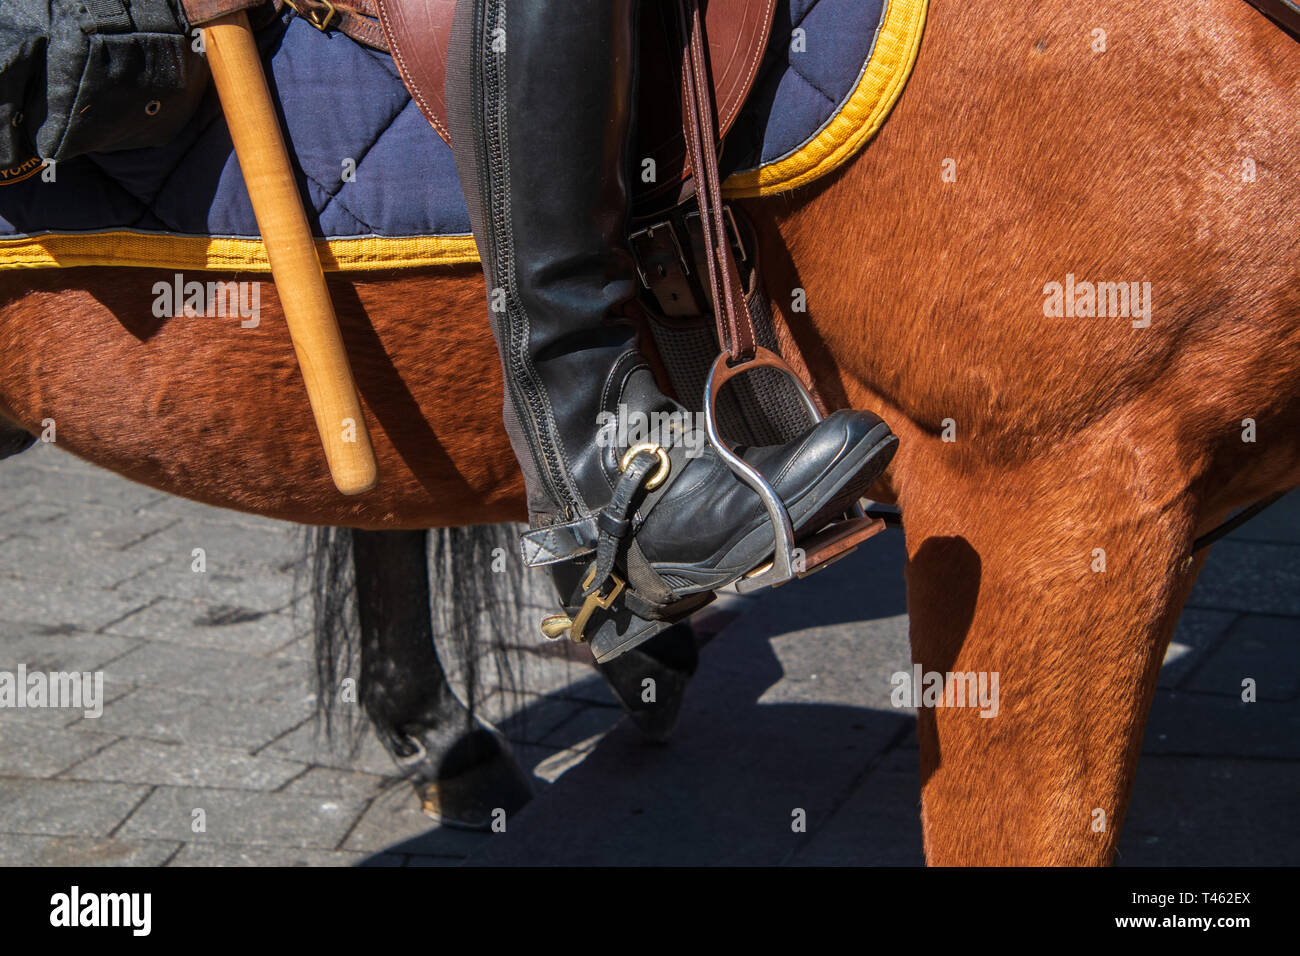 266ca3dc675f Side of beautiful brown horse with police riding boot in stirrup. The  horse s blanket is